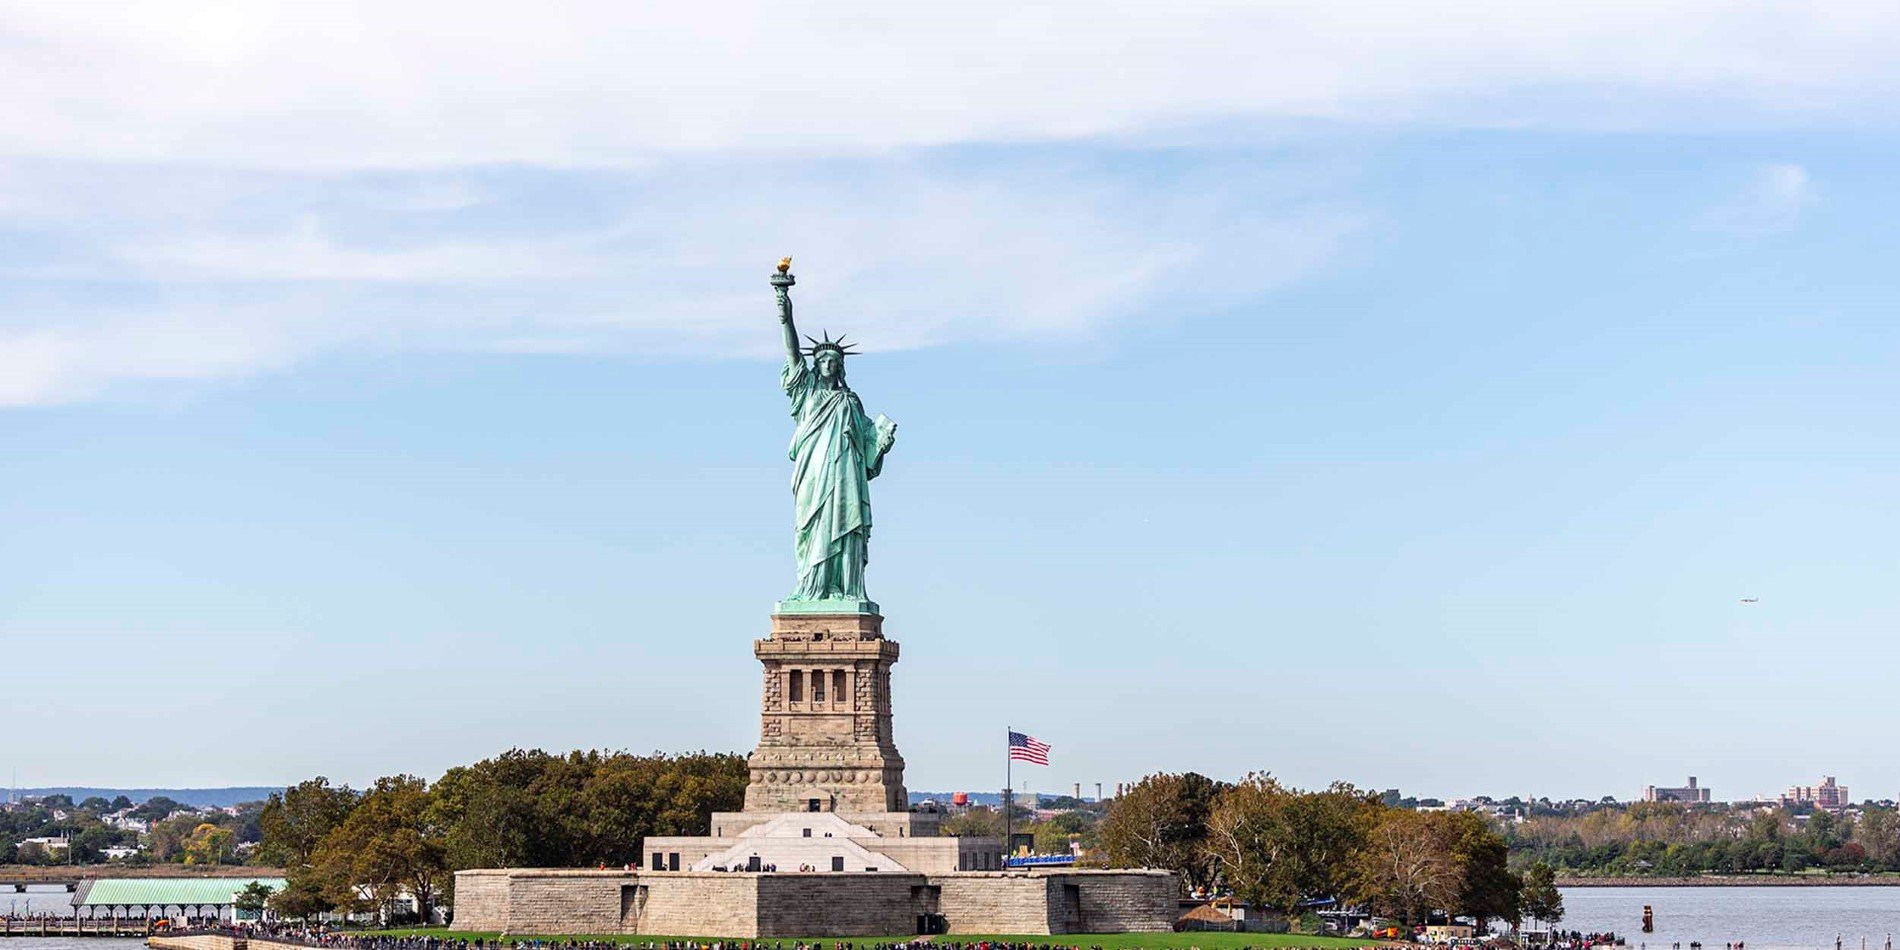 View of the Statue of Liberty, New York City